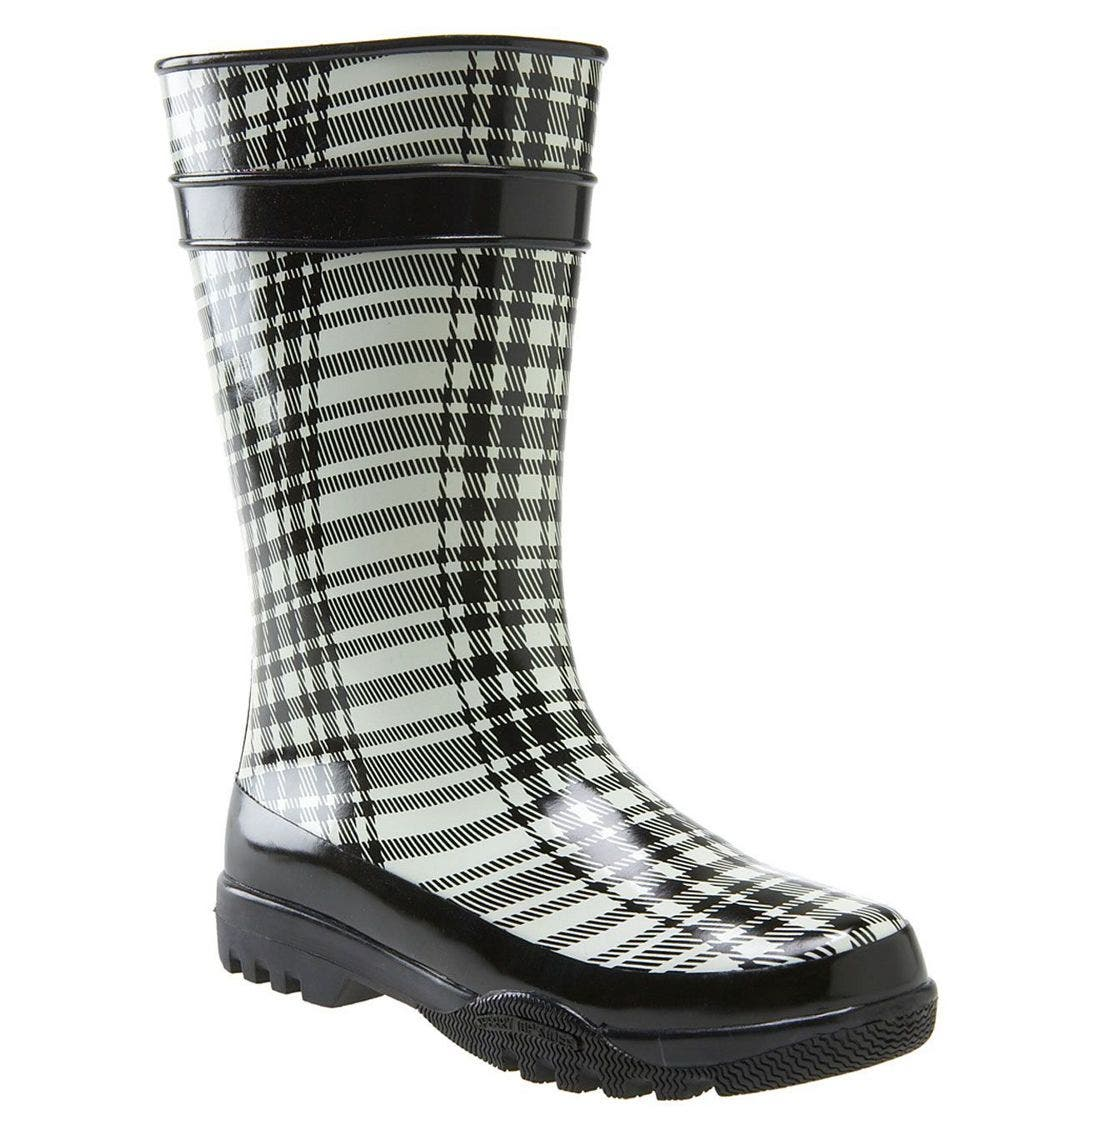 SPERRY Top-Sider<sup>®</sup> 'Pelican' Tall Rain Boot, Main, color, 005